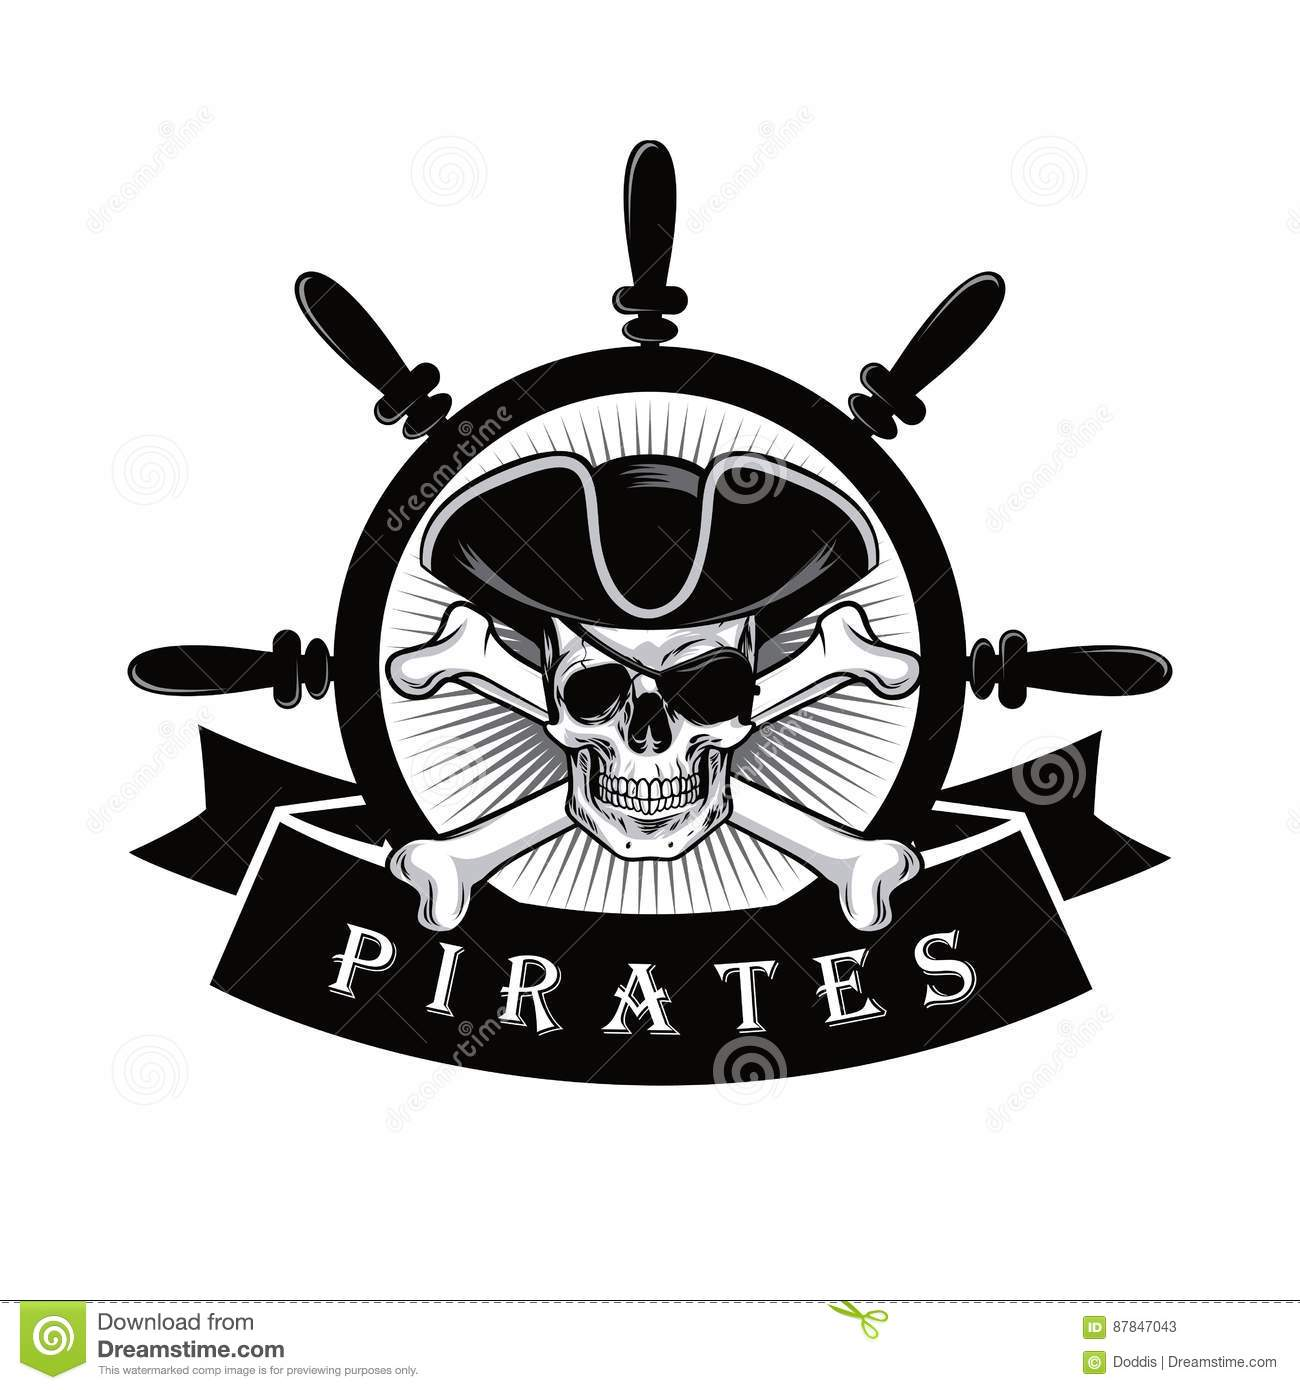 pirate skull with eyepatch and ship helm logo design. Black Bedroom Furniture Sets. Home Design Ideas